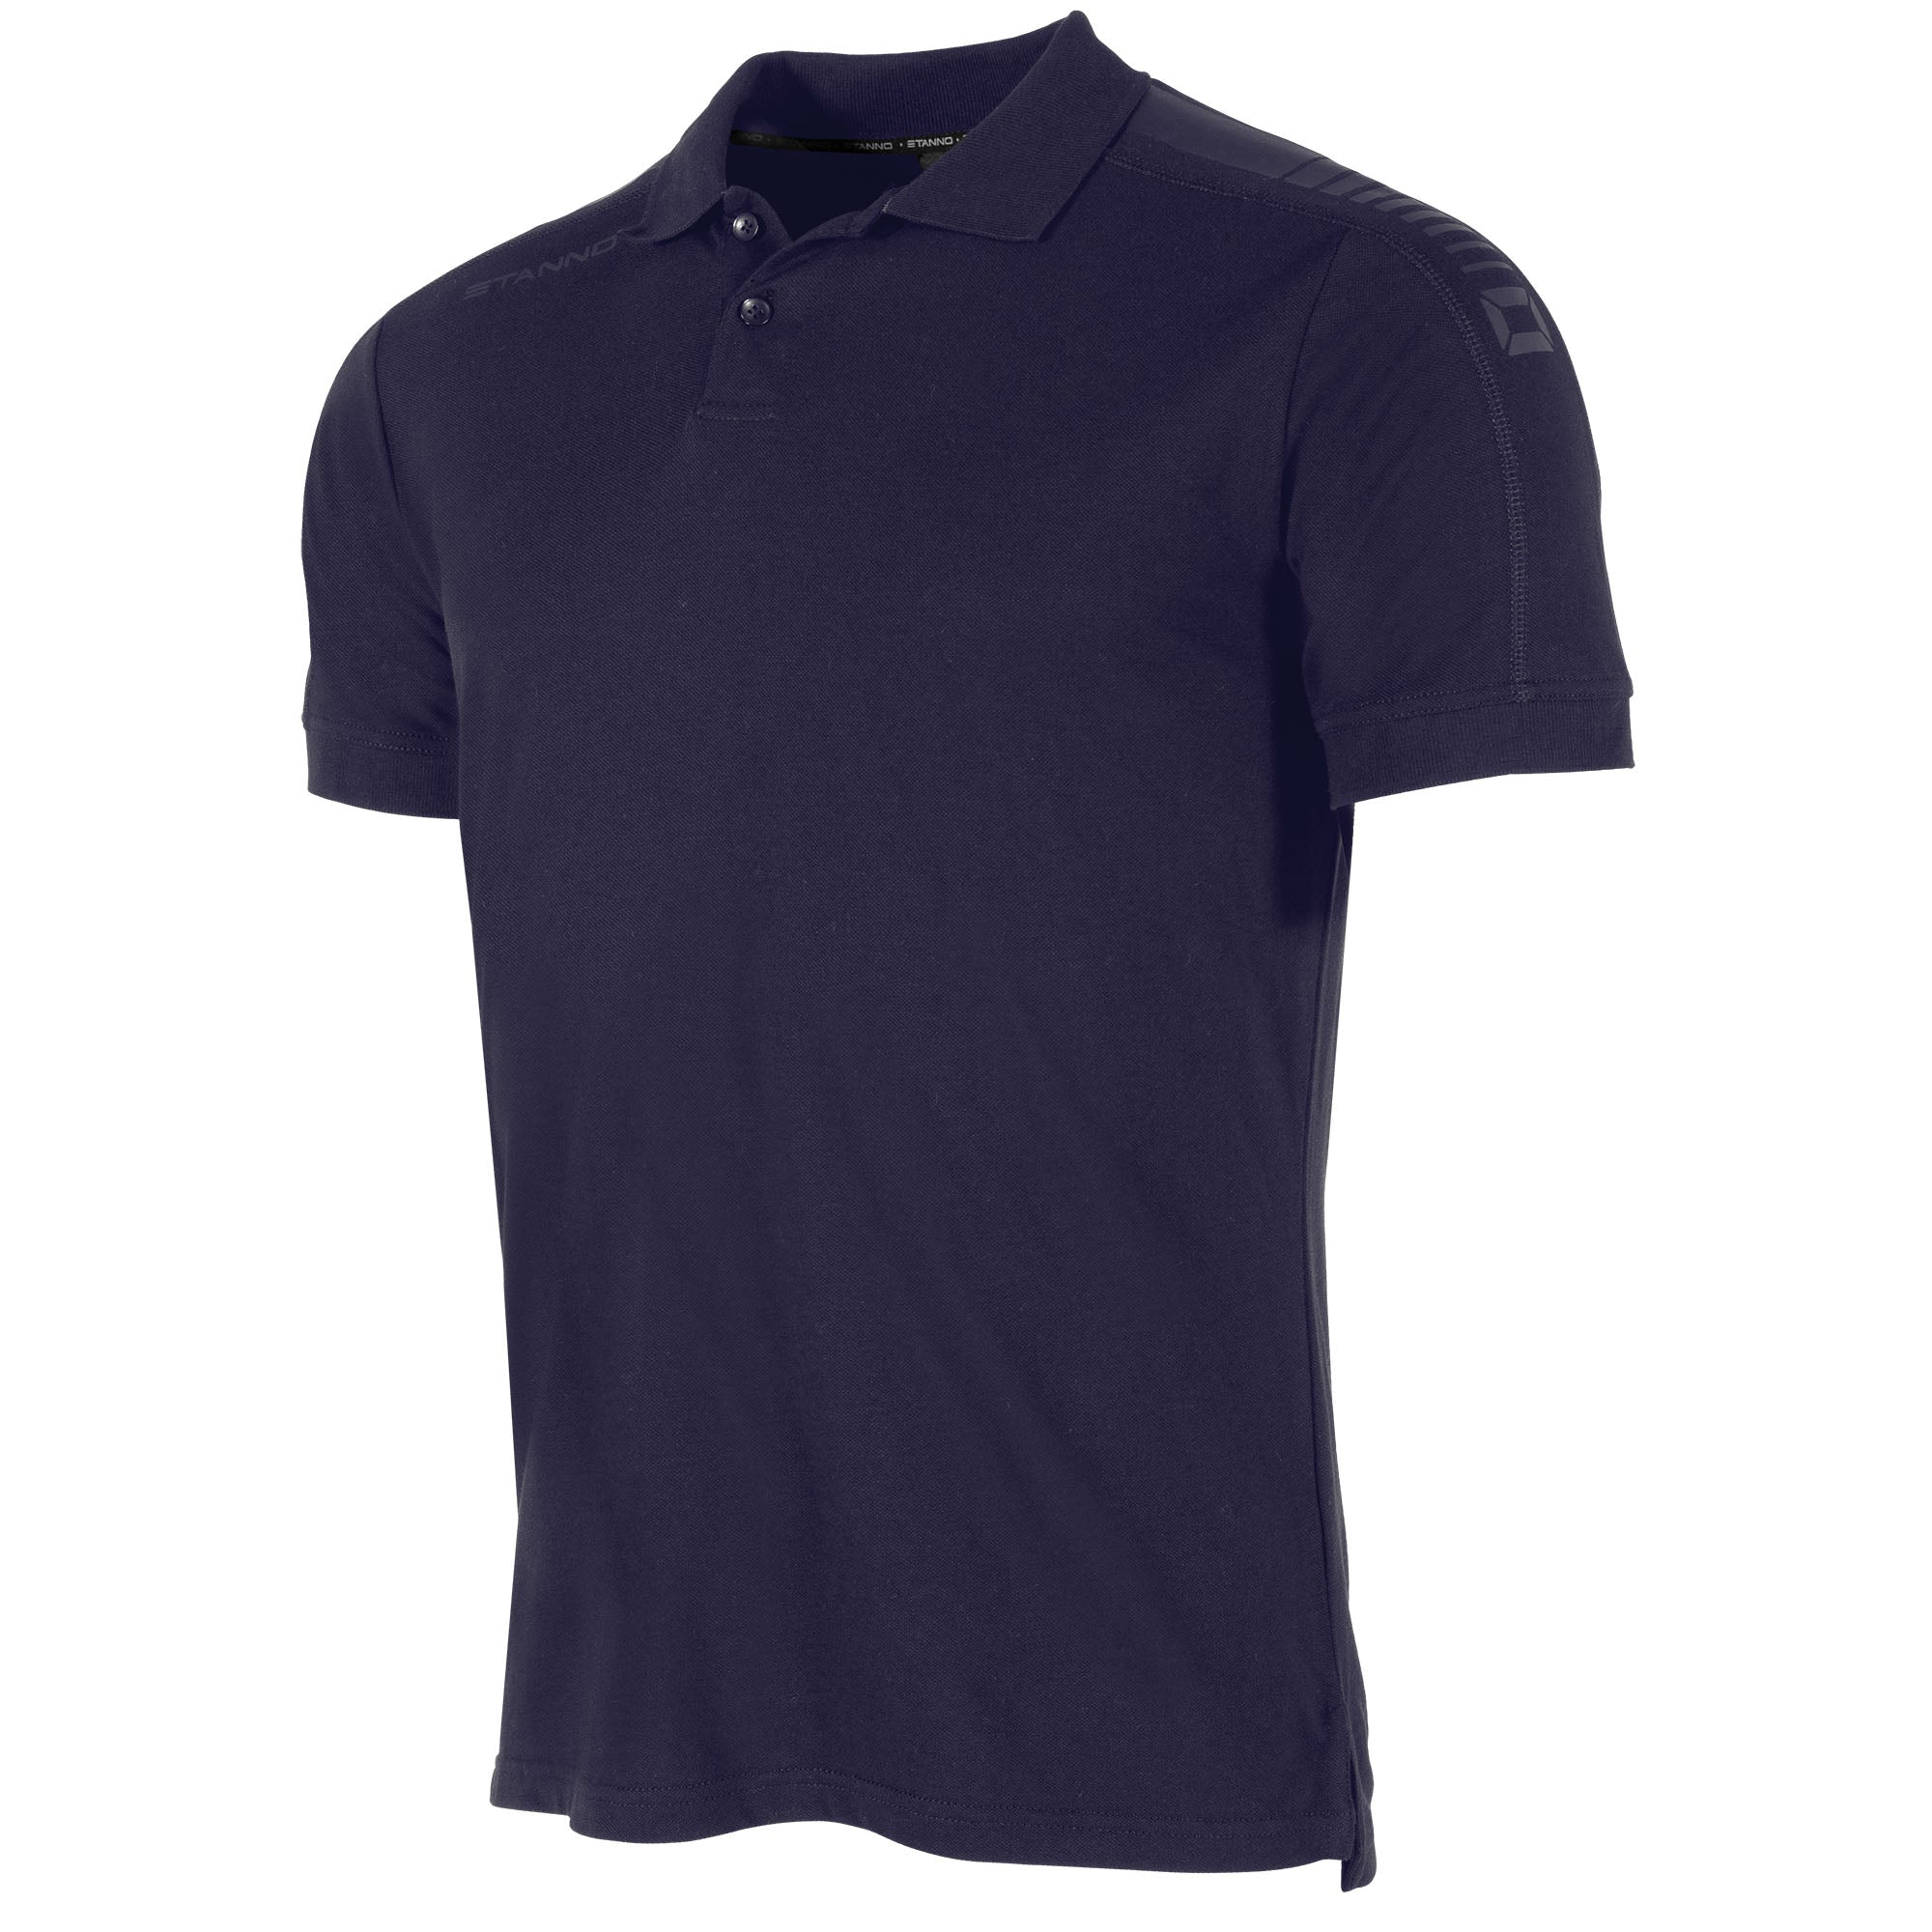 front view of a navy Stanno Ease Polo. 2 buttons, and print design on the shoulders.